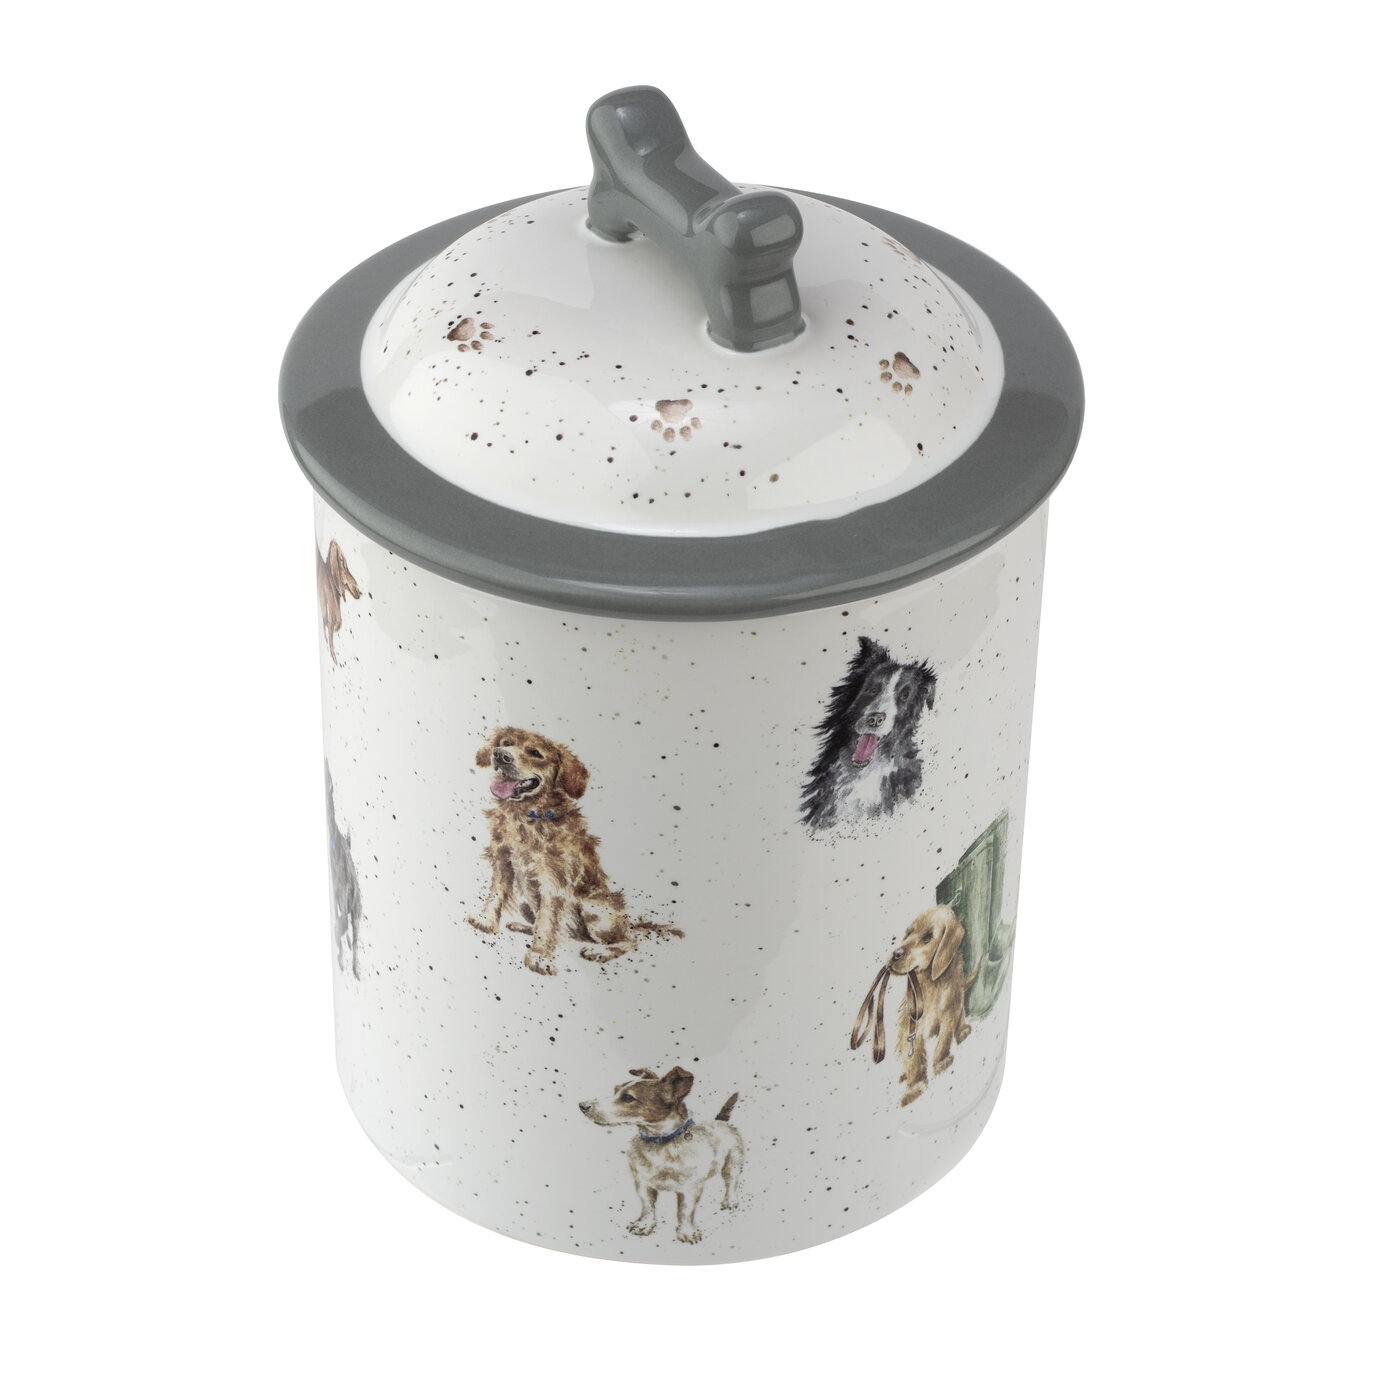 Royal Worcester Wrendale Designs 7.2 Inch Treat Jar (Assorted Dogs) image number 0